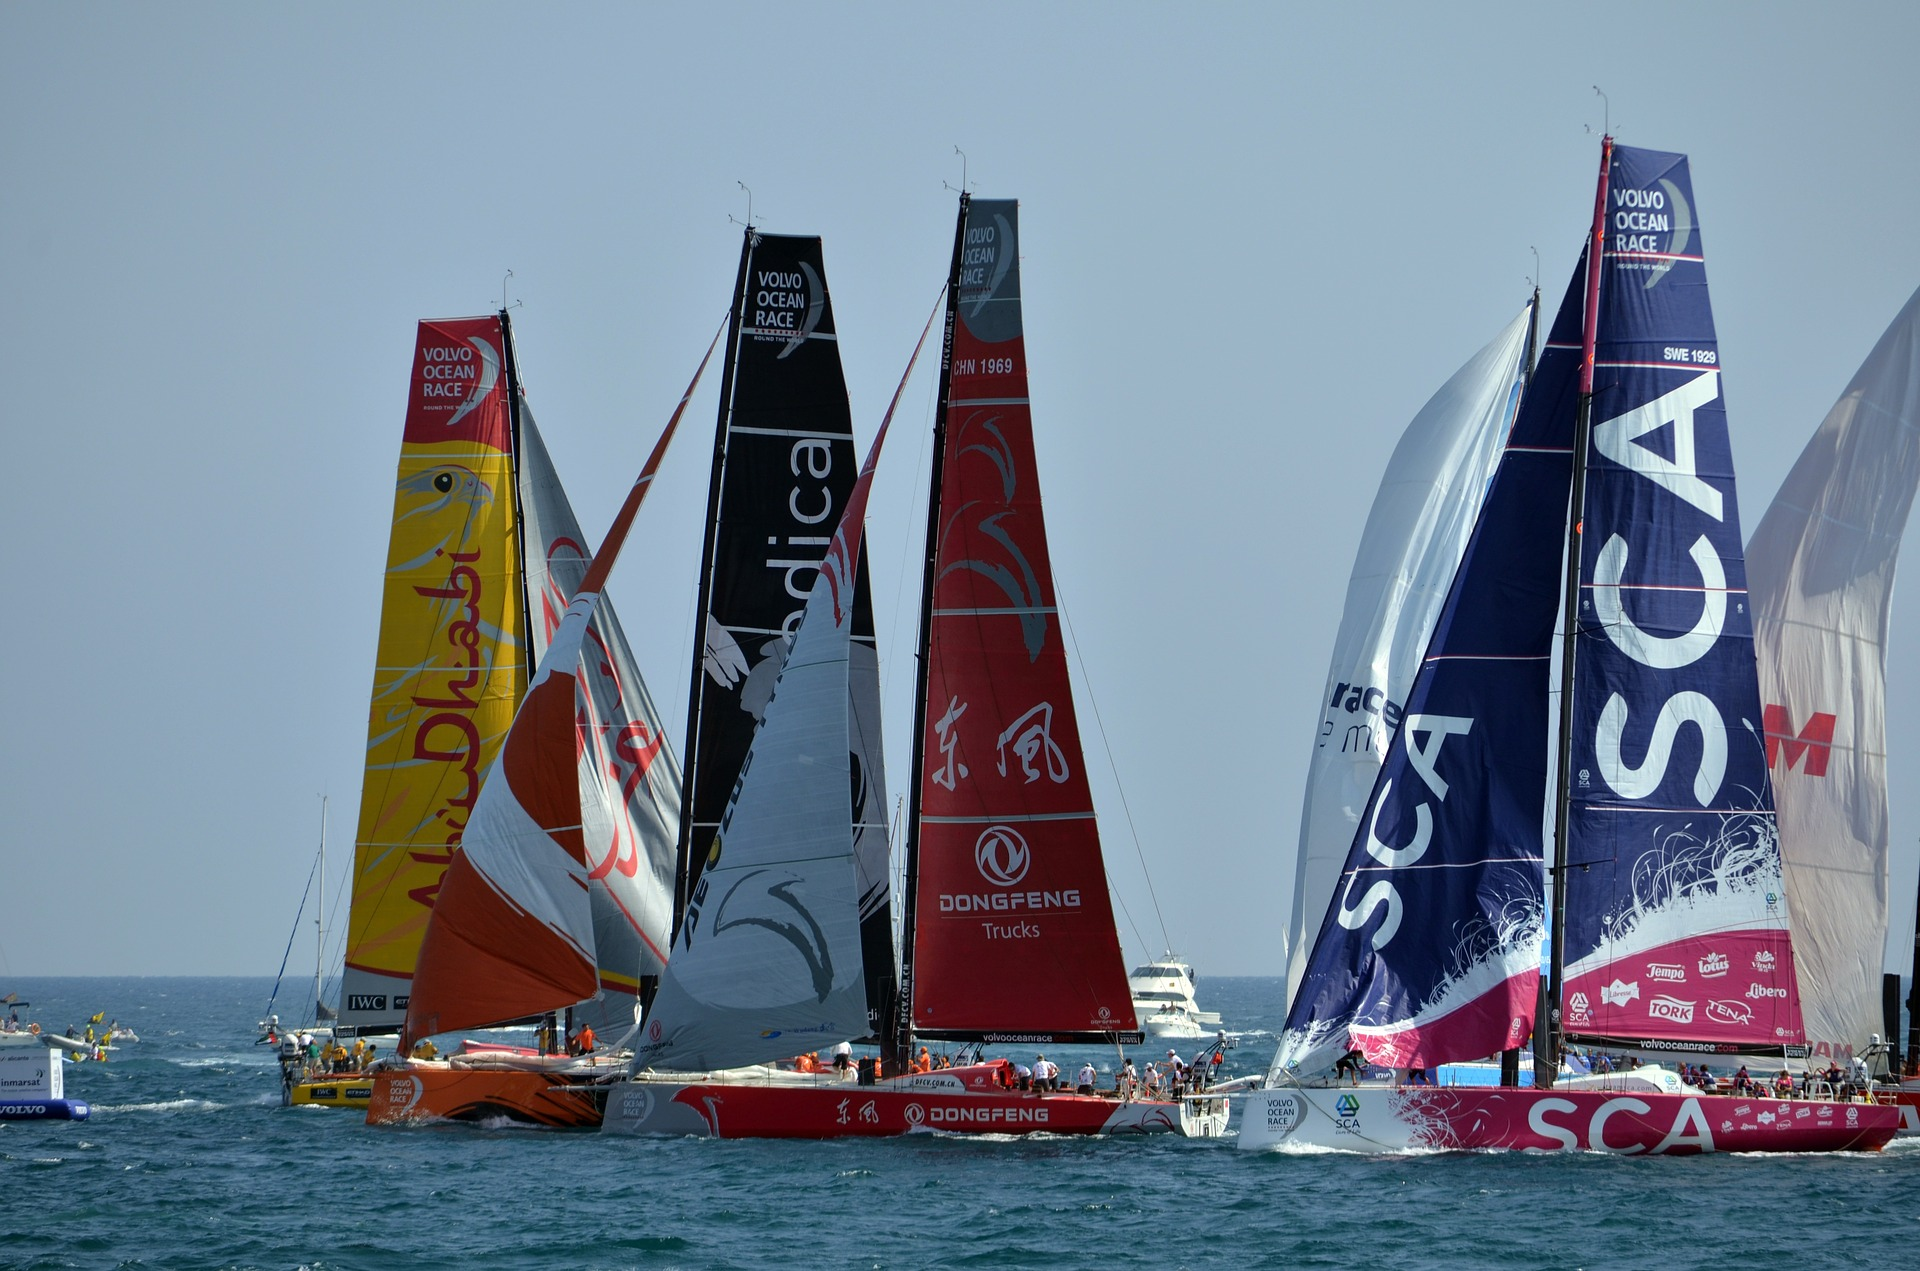 regatta 636176 1920 Neues vom Volvo Ocean Race und Musto www.12seemeilen.de